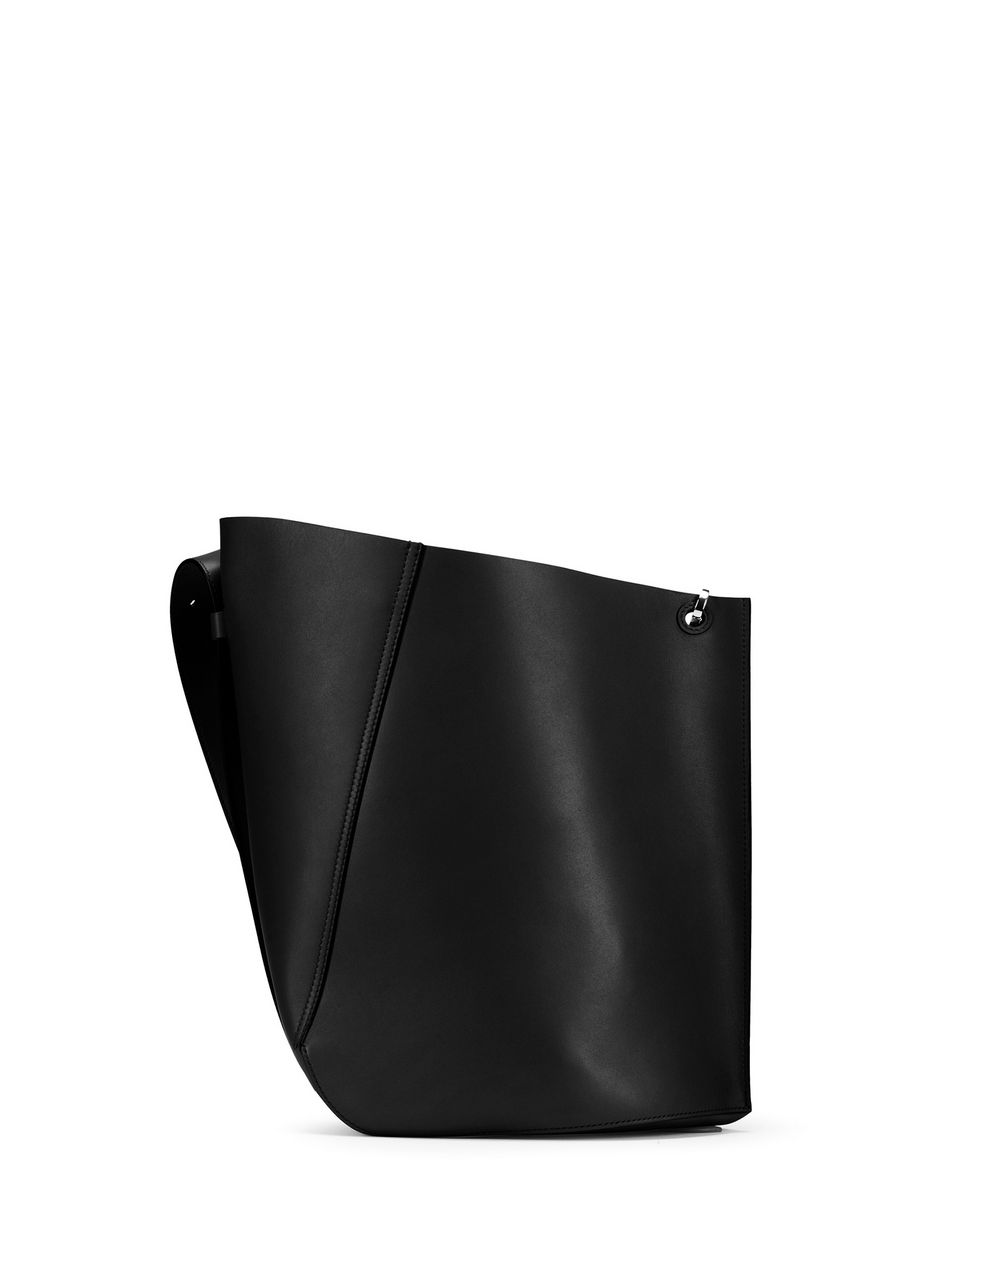 MEDIUM HOOK BAG - Lanvin